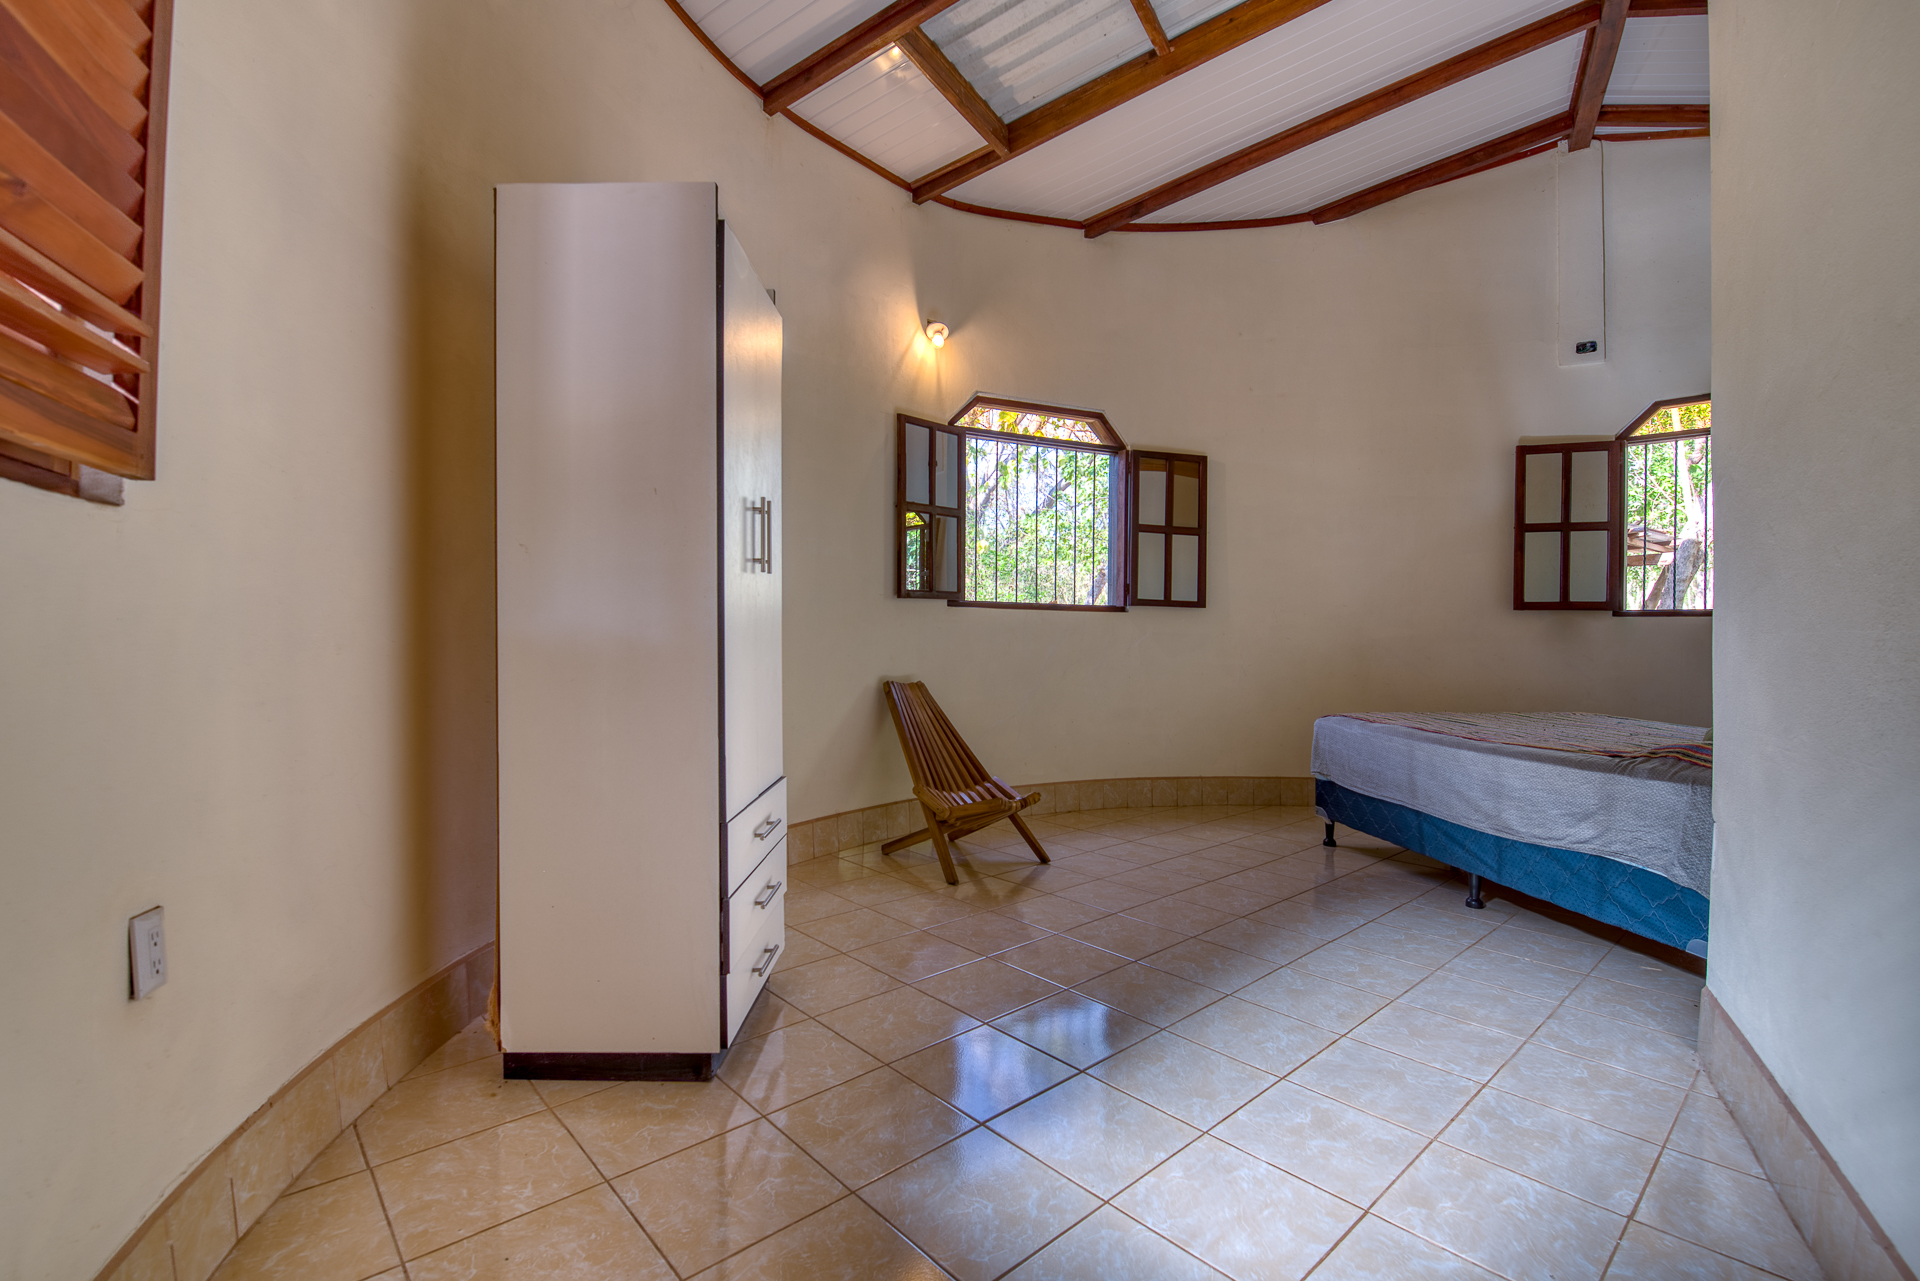 https://property-nicaragua.com/pedrodev/wp-content/uploads/2019/08/Quaint-Home-in-Nature-with-Rental-Units-San-Juan-del-Sur-Real-Estate-4.jpg